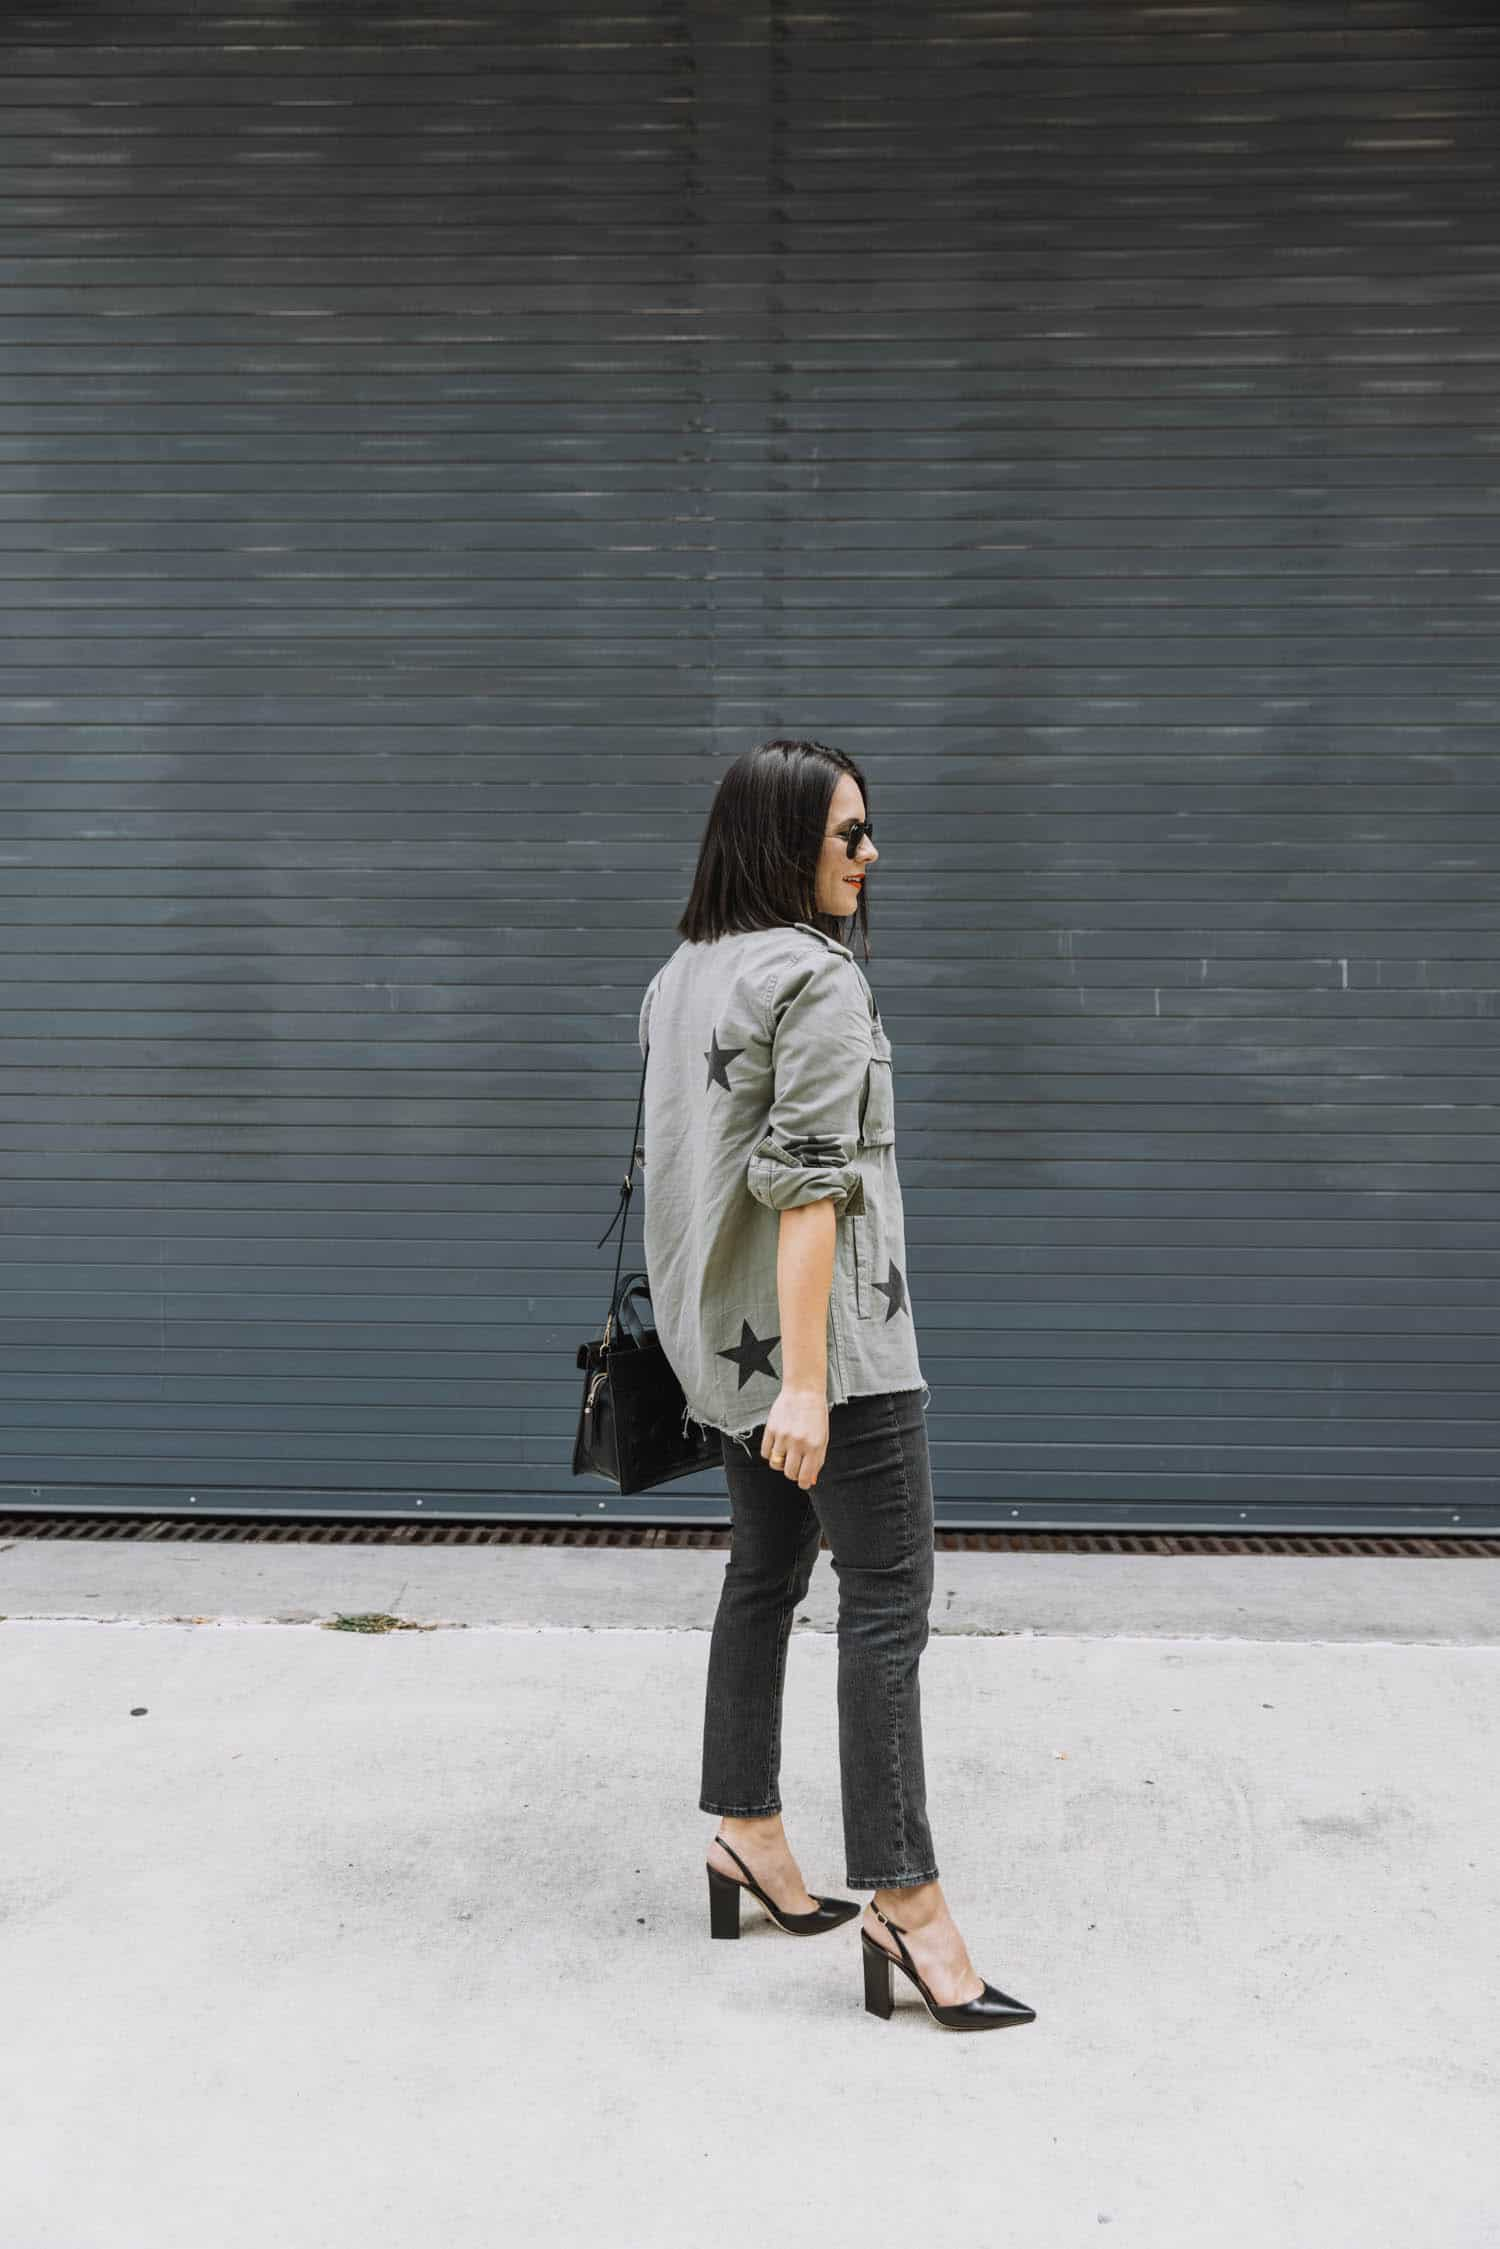 How to style a utility jacket